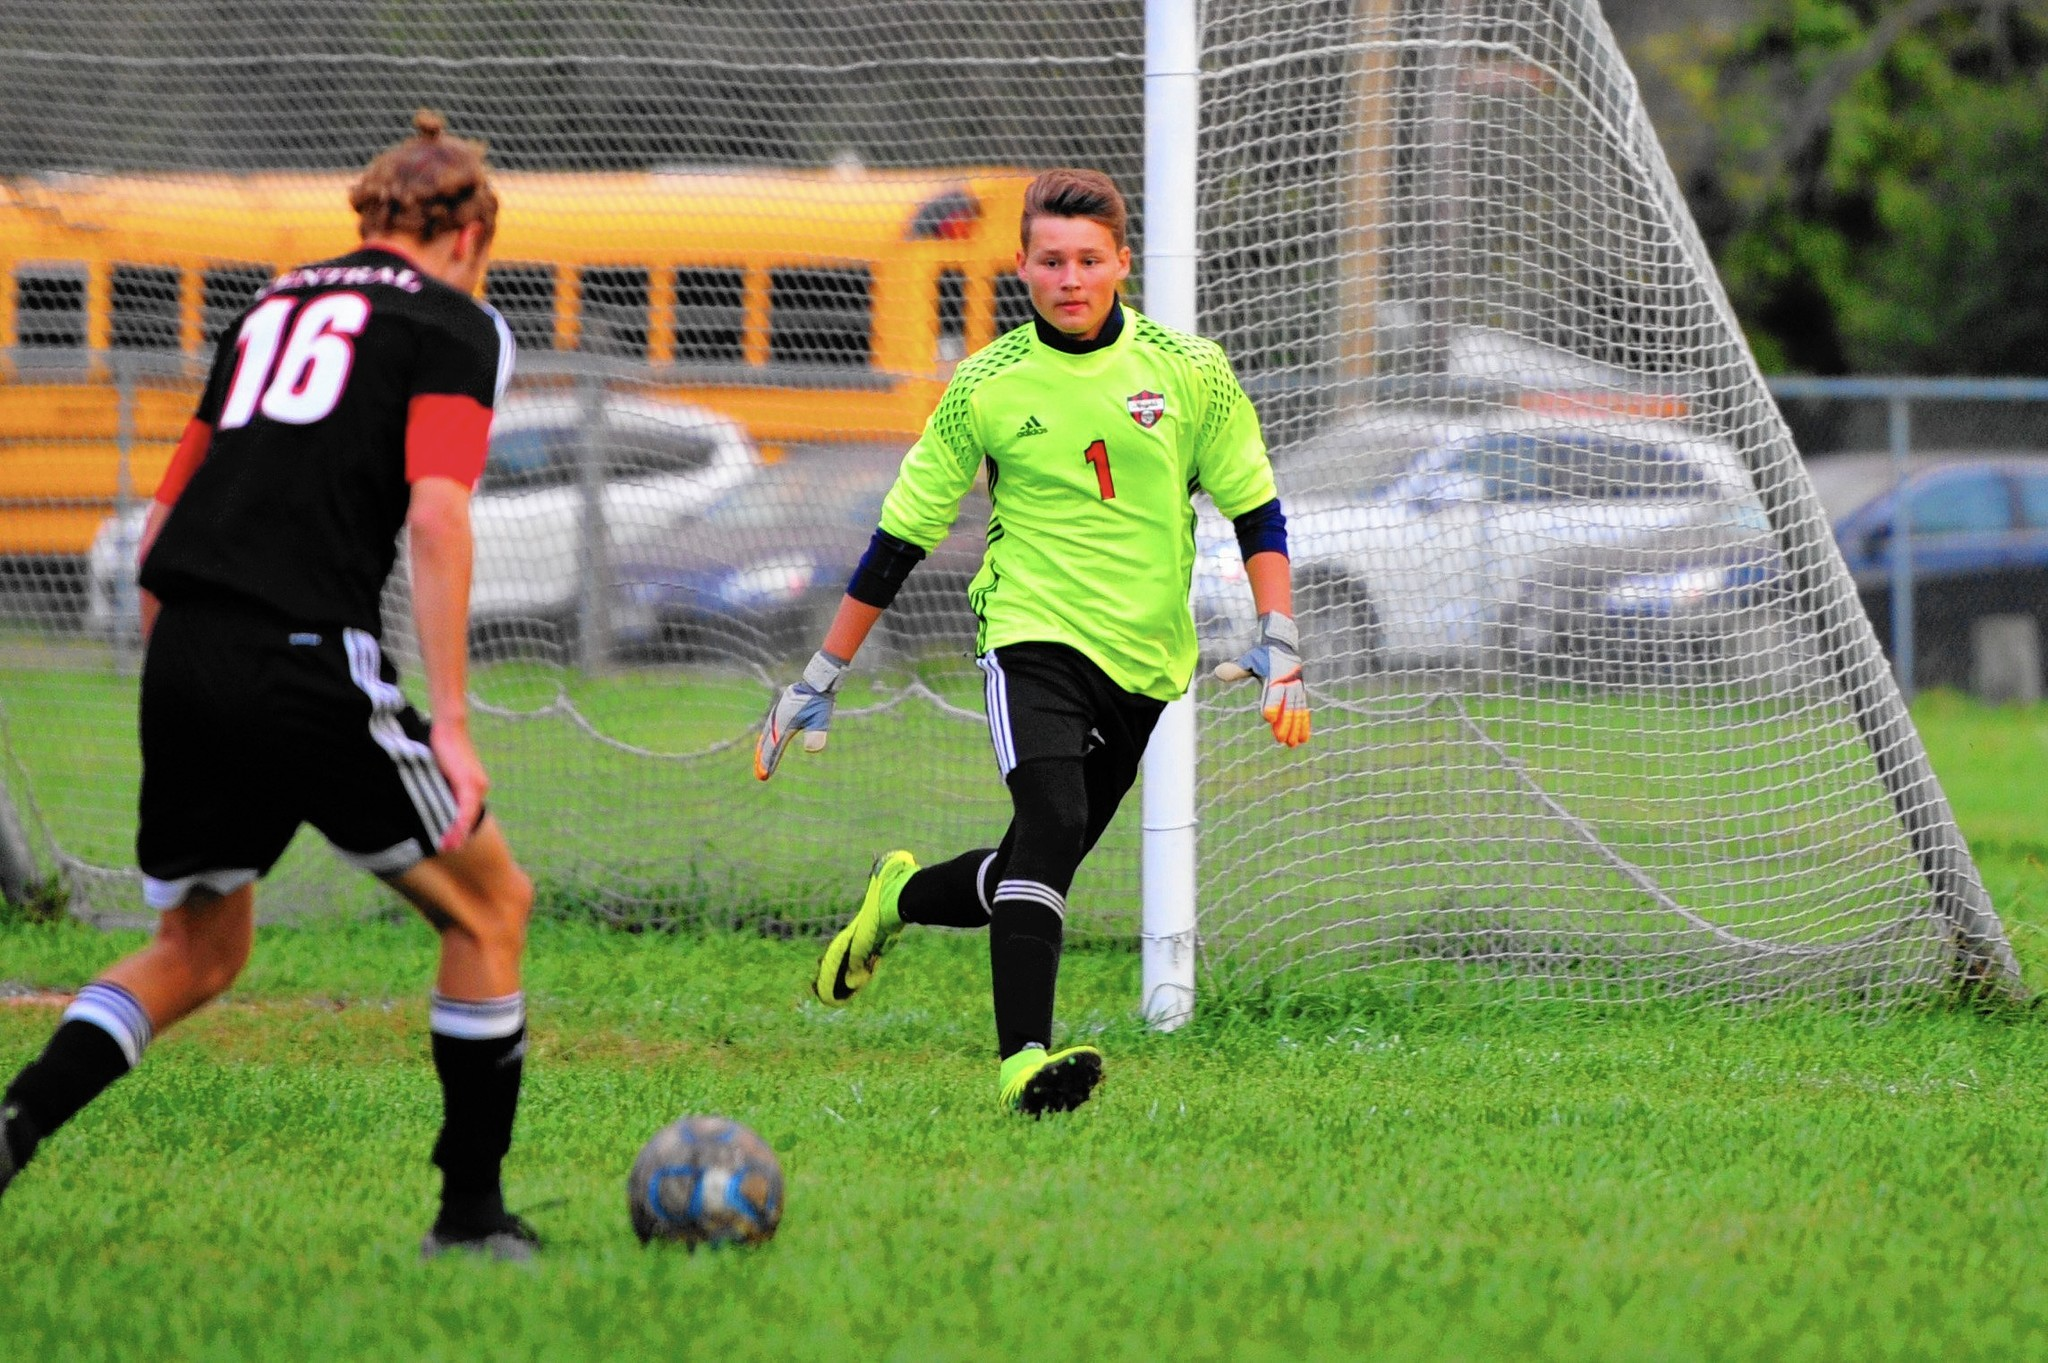 Ct-sta-boys-soccer-lincoln-way-central-thornton-st-0930-20160929